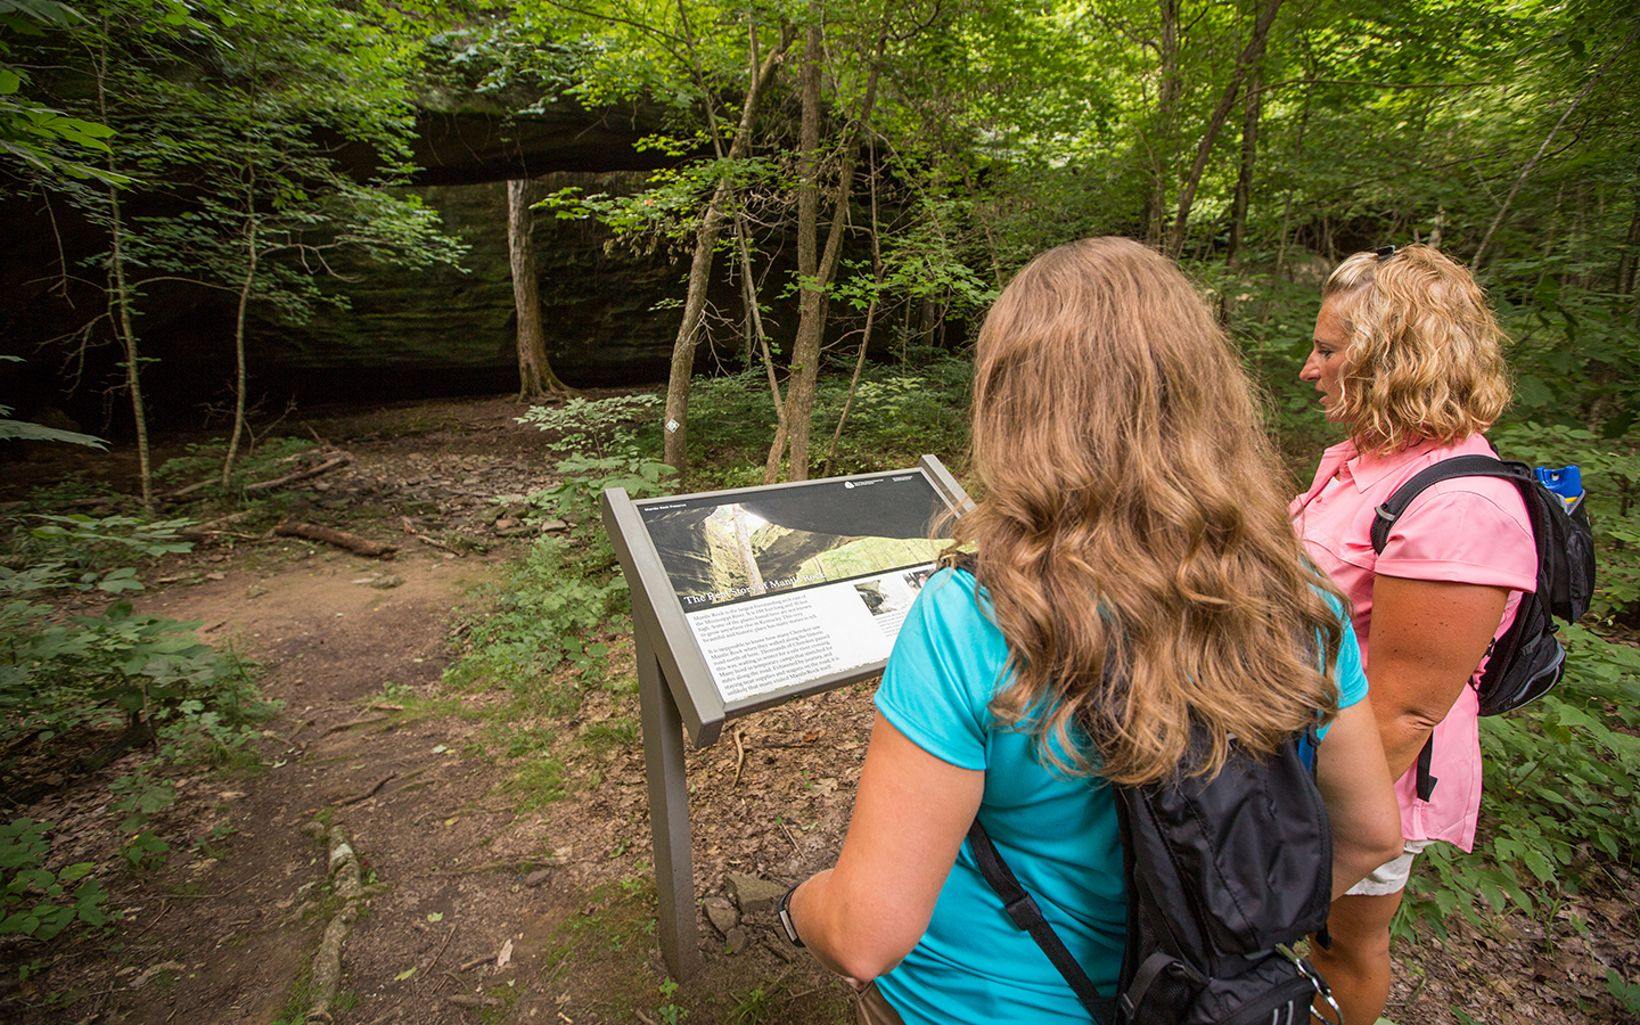 Two hikers read an interpretive sign on a hiking trail.